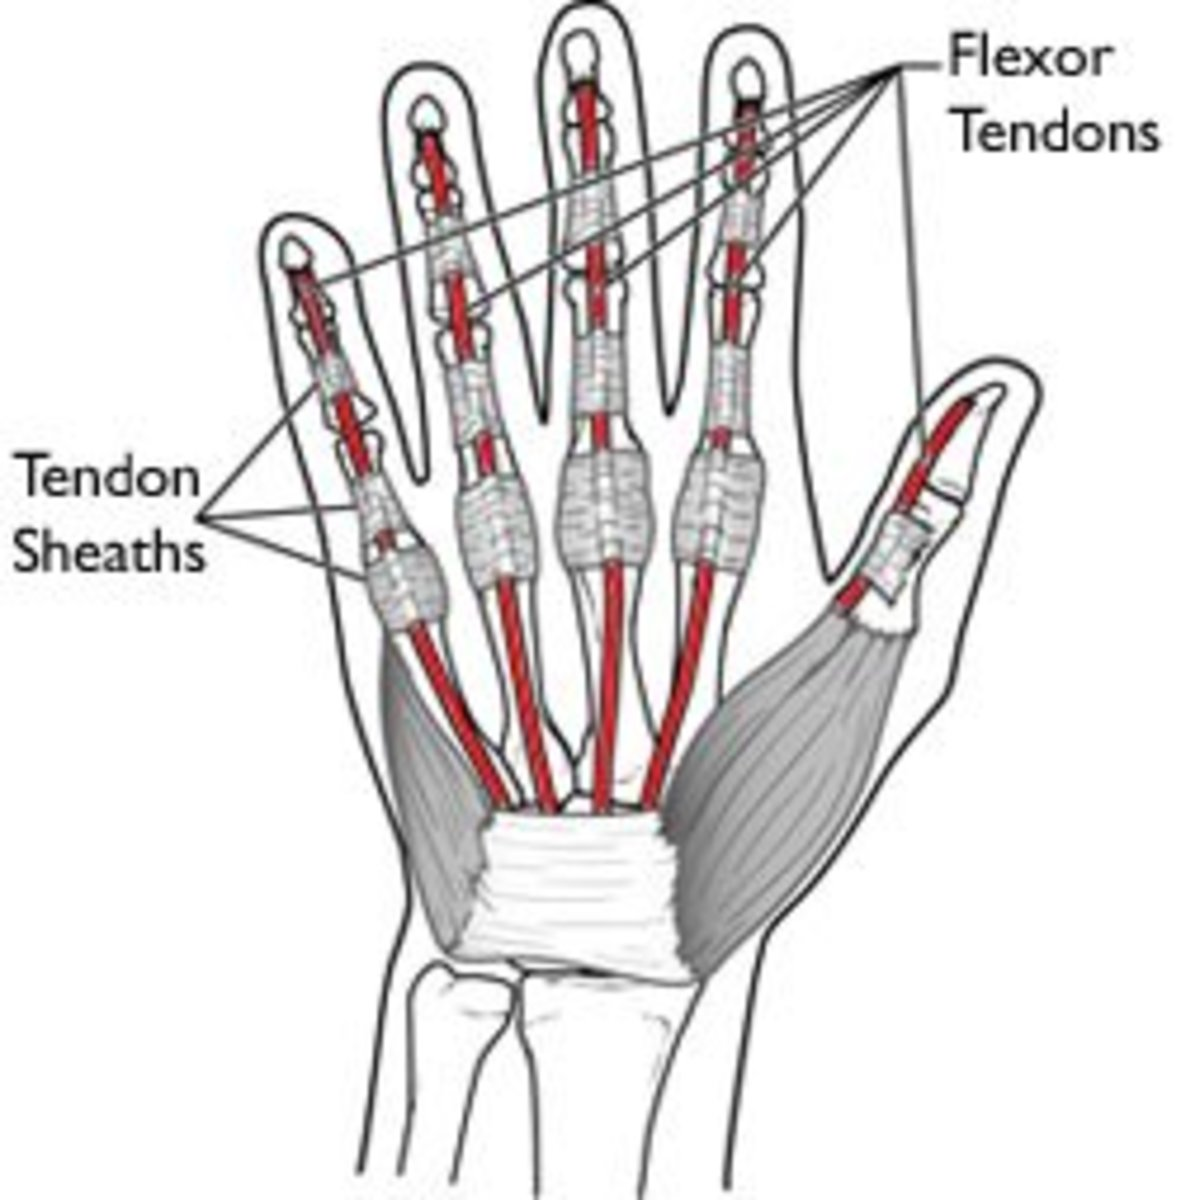 A Severed Flexor Tendon in Pinky Finger